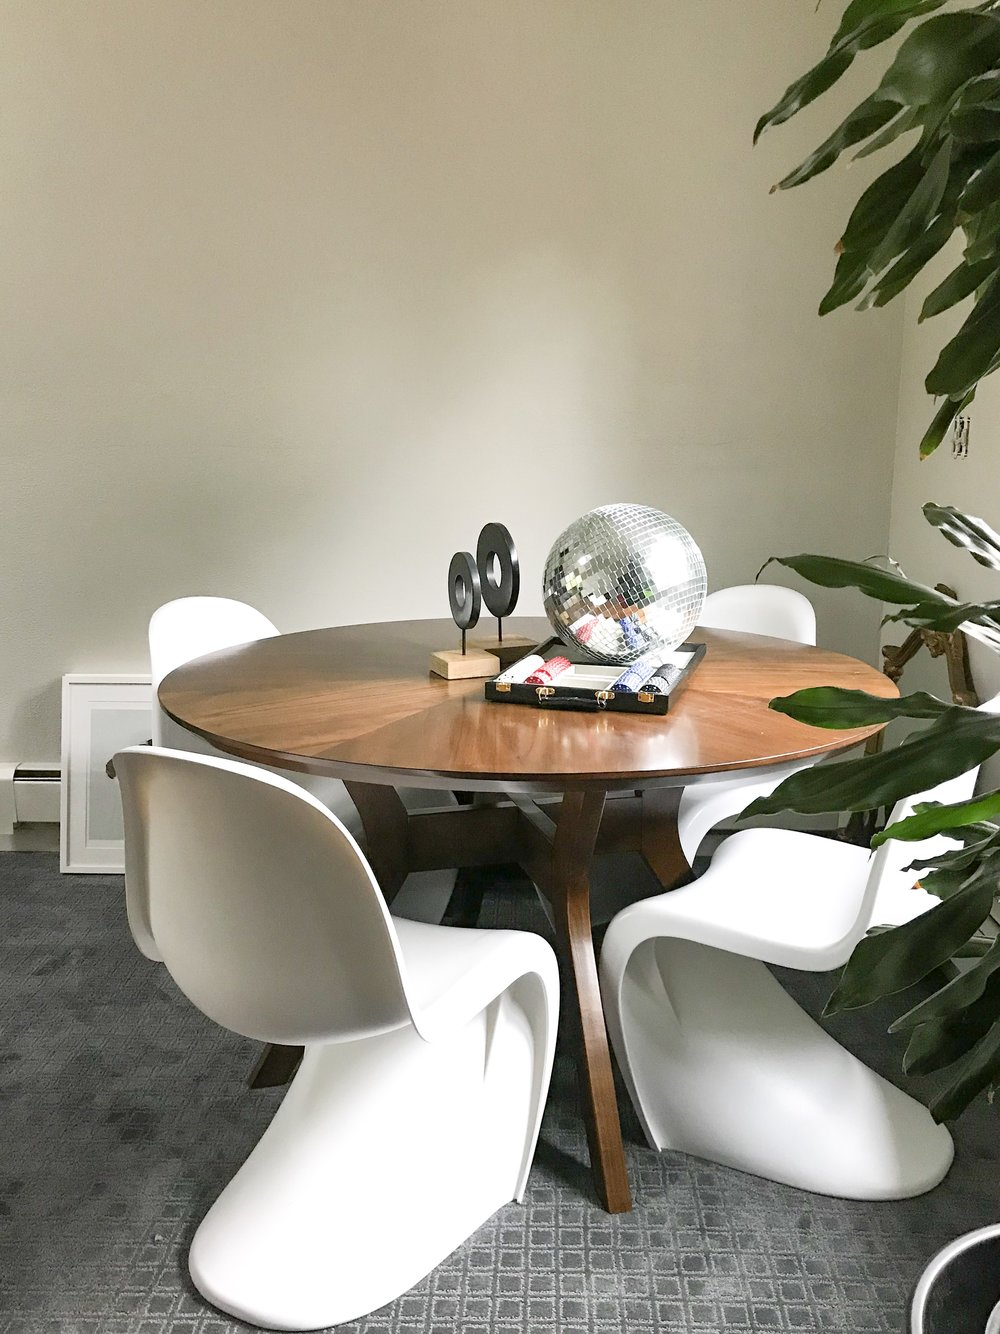 Raymour & Flanigan Pryce dining table paired with modern S chairs